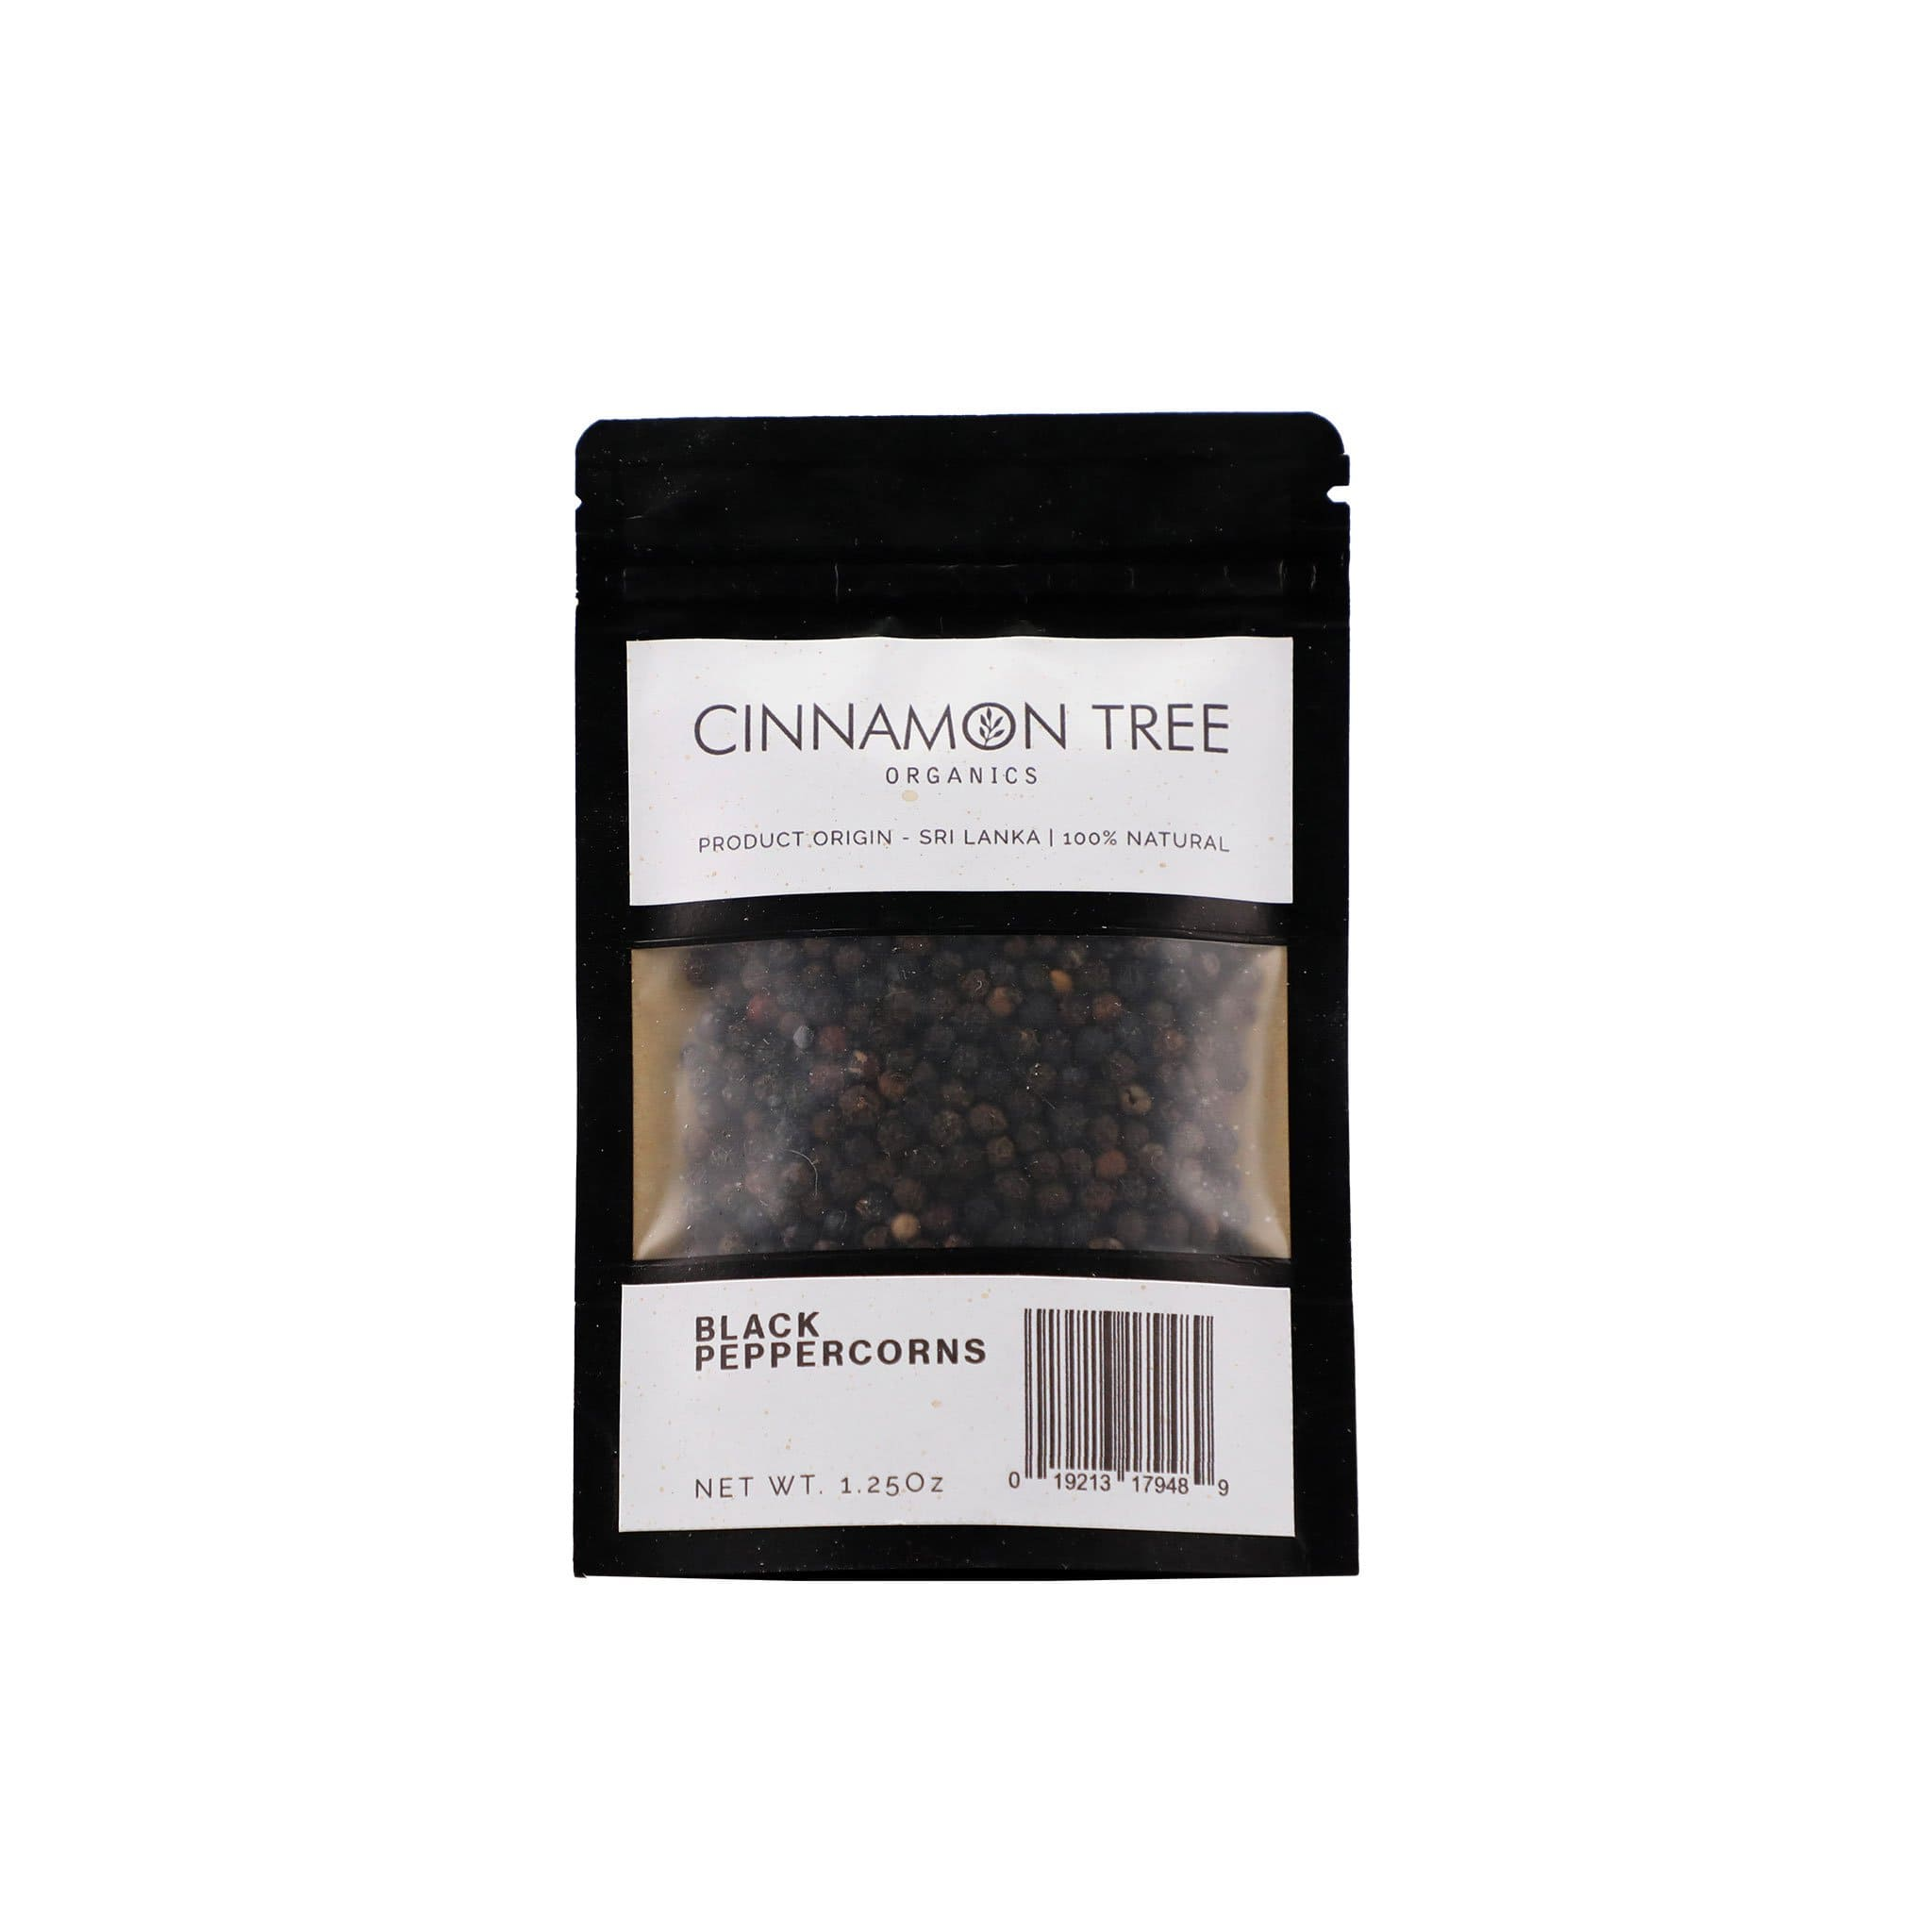 Cinnamon Tree Organics single origin organic black peppercorns 1.25Oz